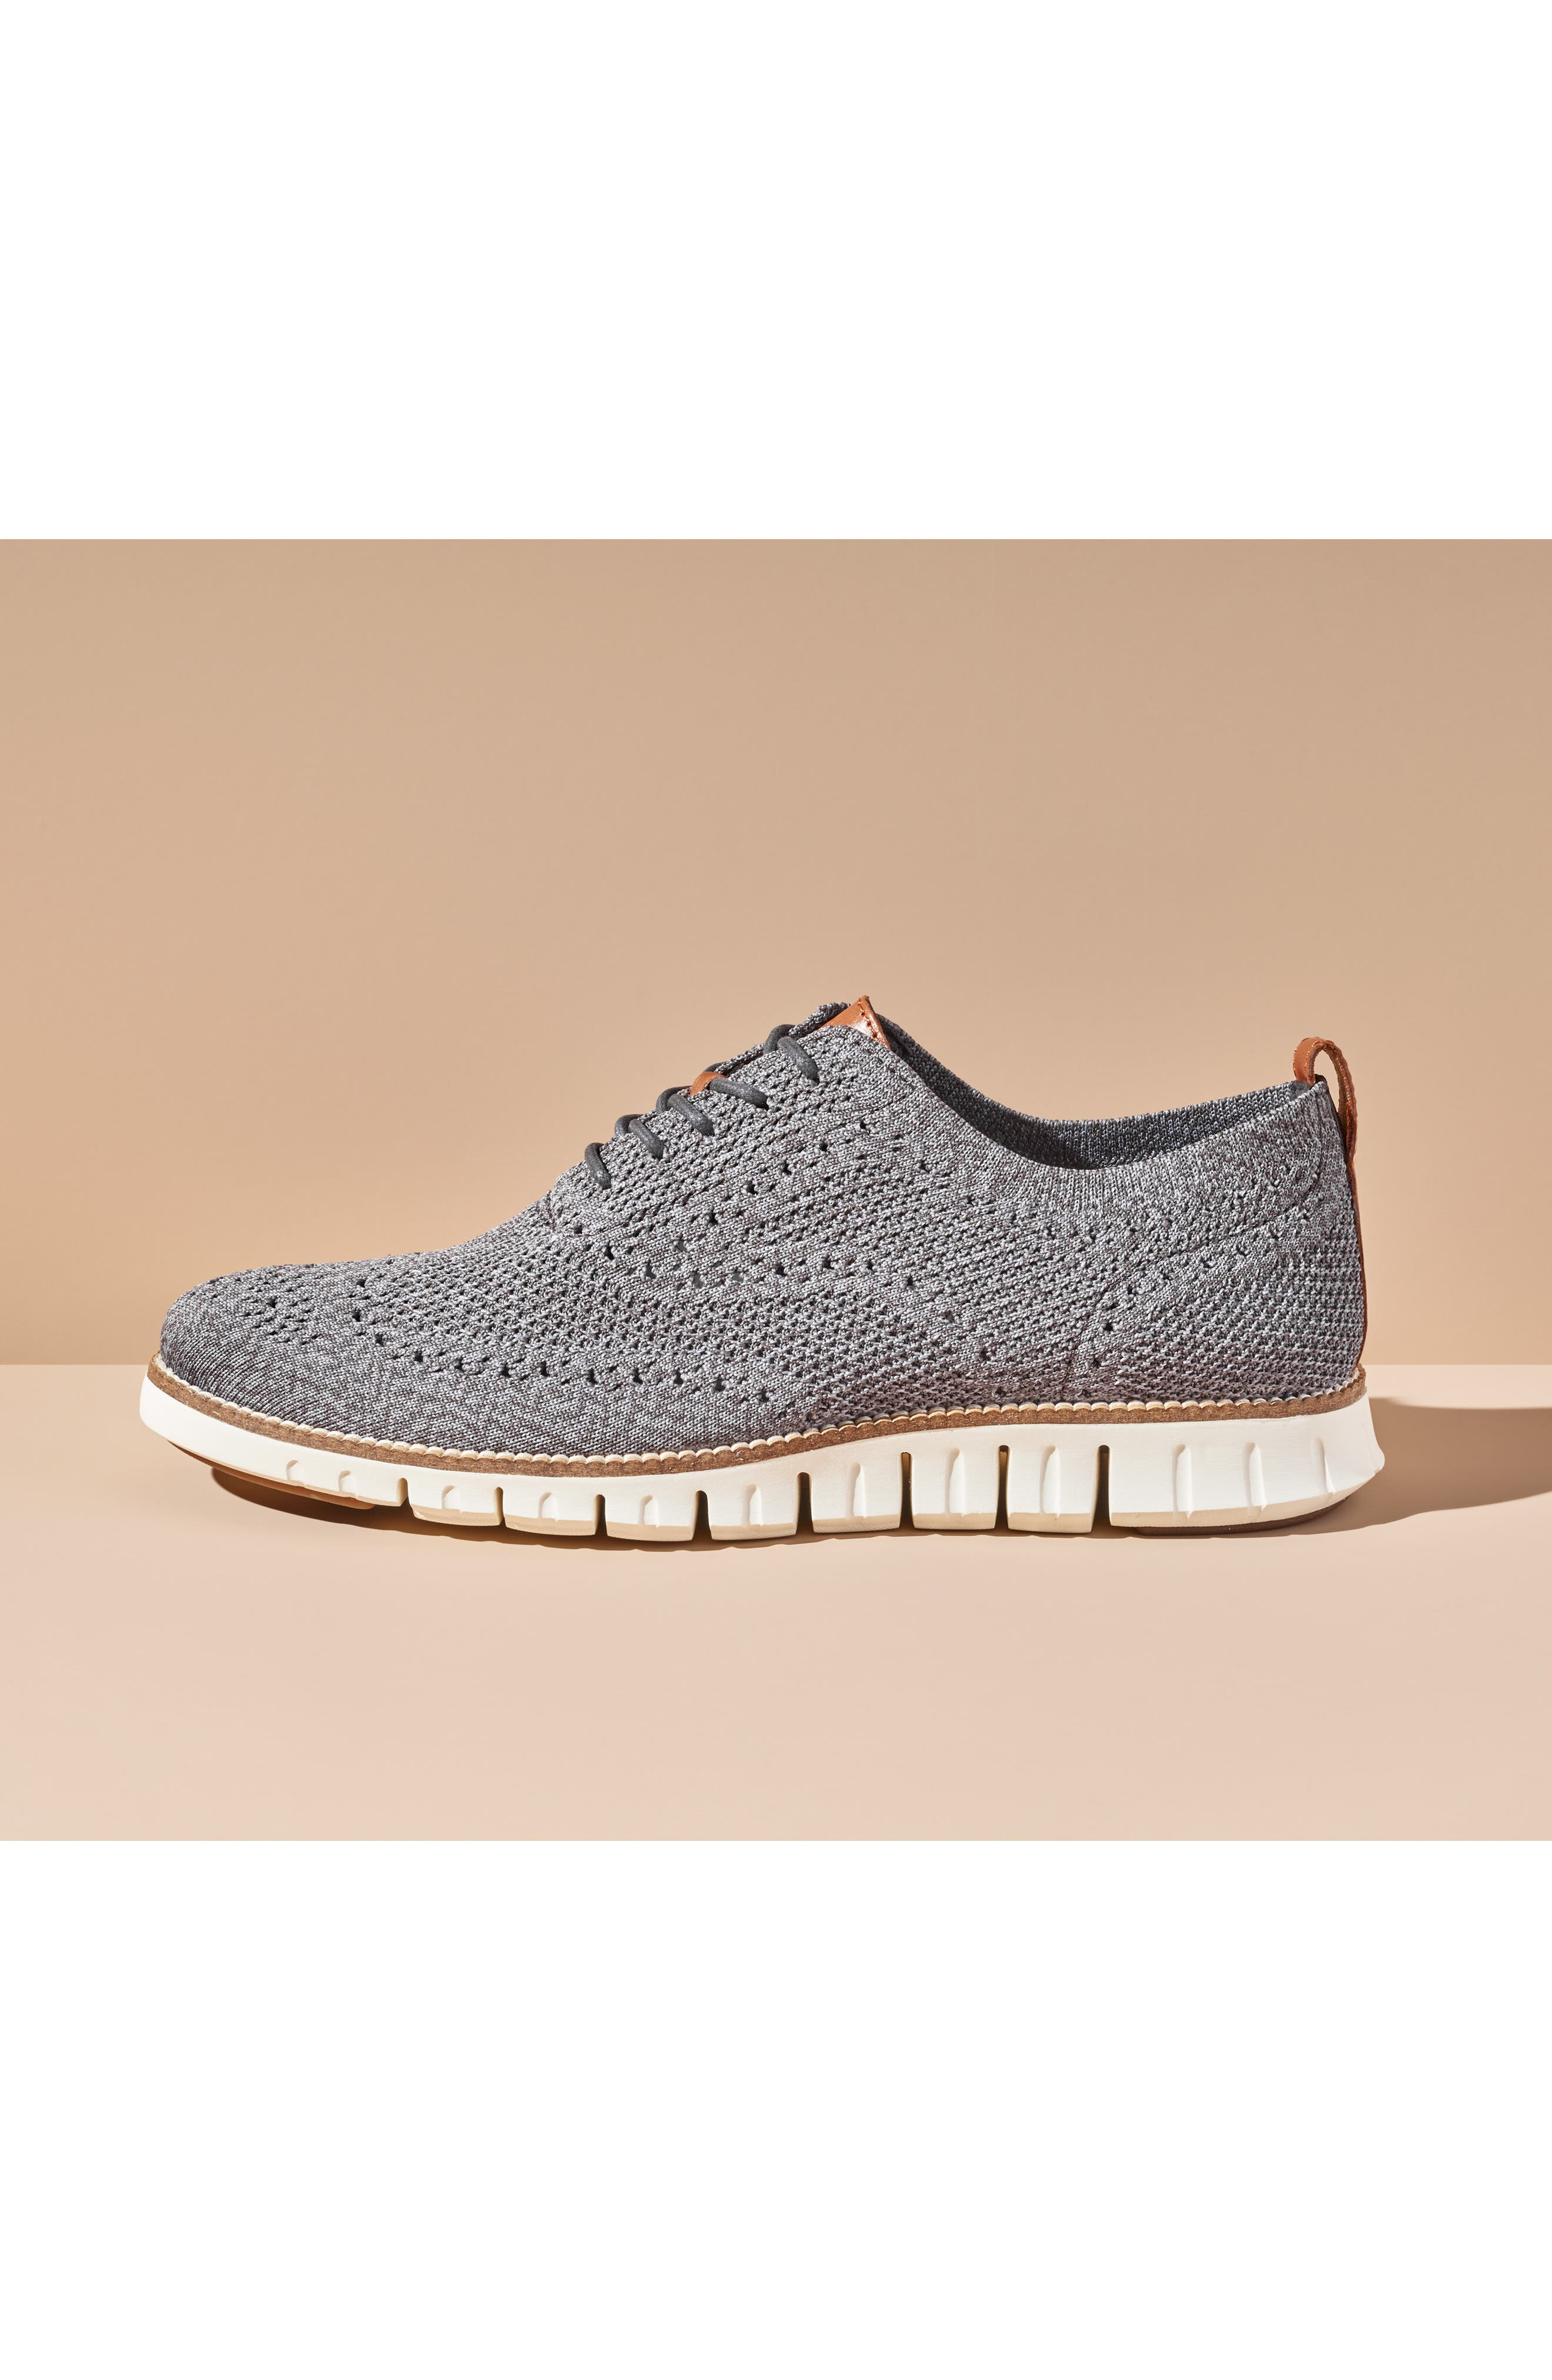 COLE HAAN, ZeroGrand Stitchlite Wingtip, Main thumbnail 1, color, 004